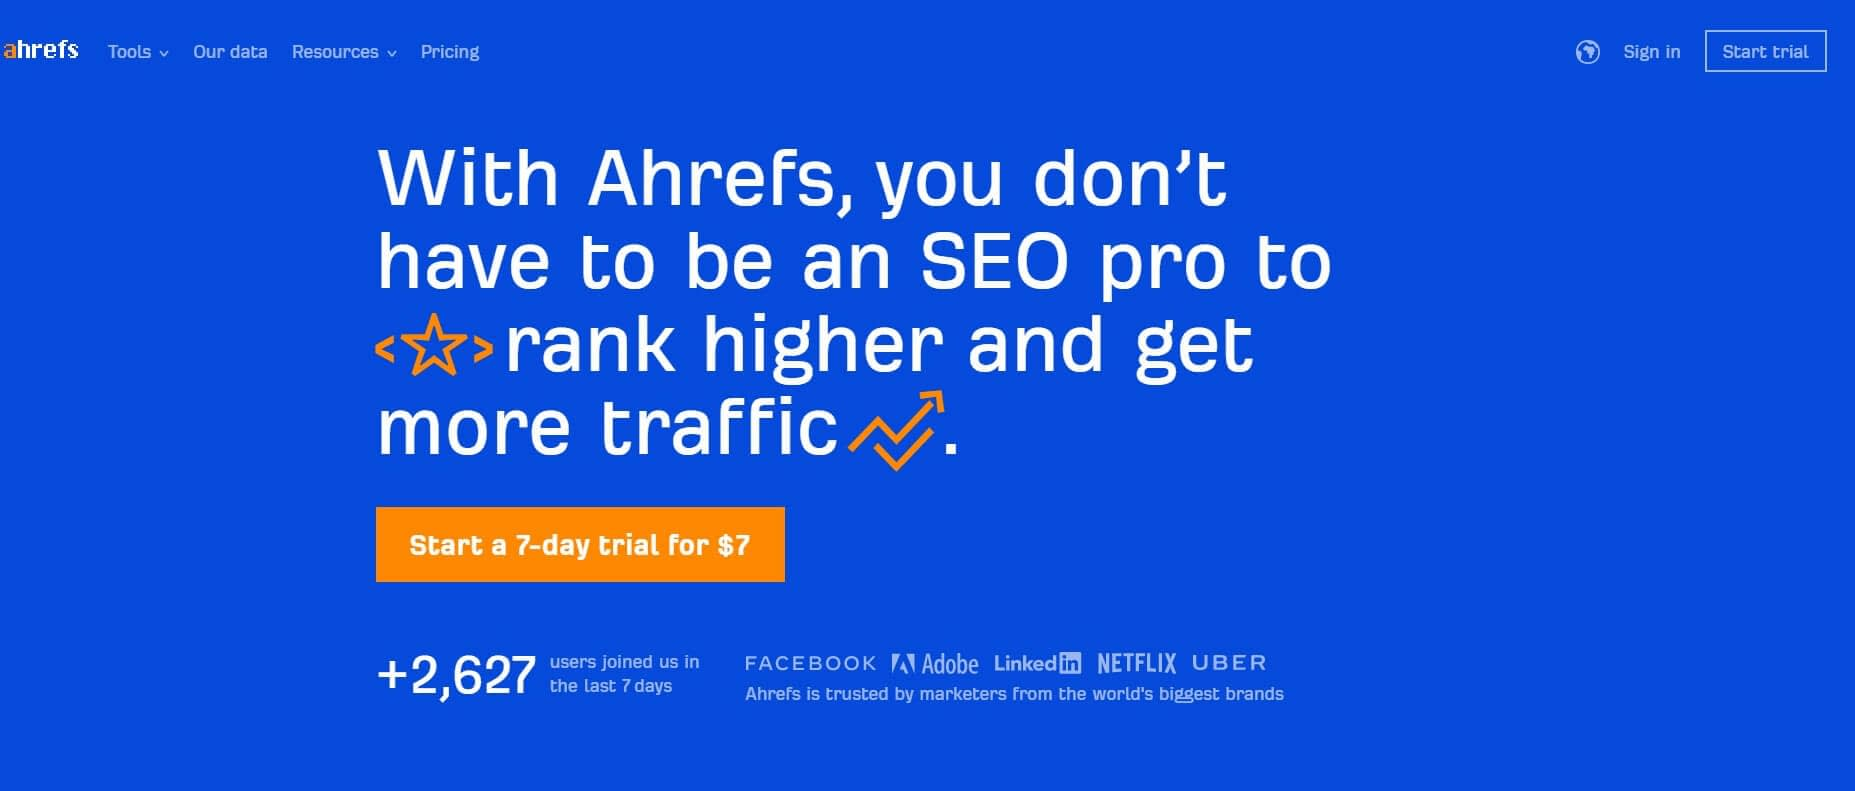 Ahrefs the great B2B SEO tool to effectively use b2b SEO and b2b content marketing for lead generation.